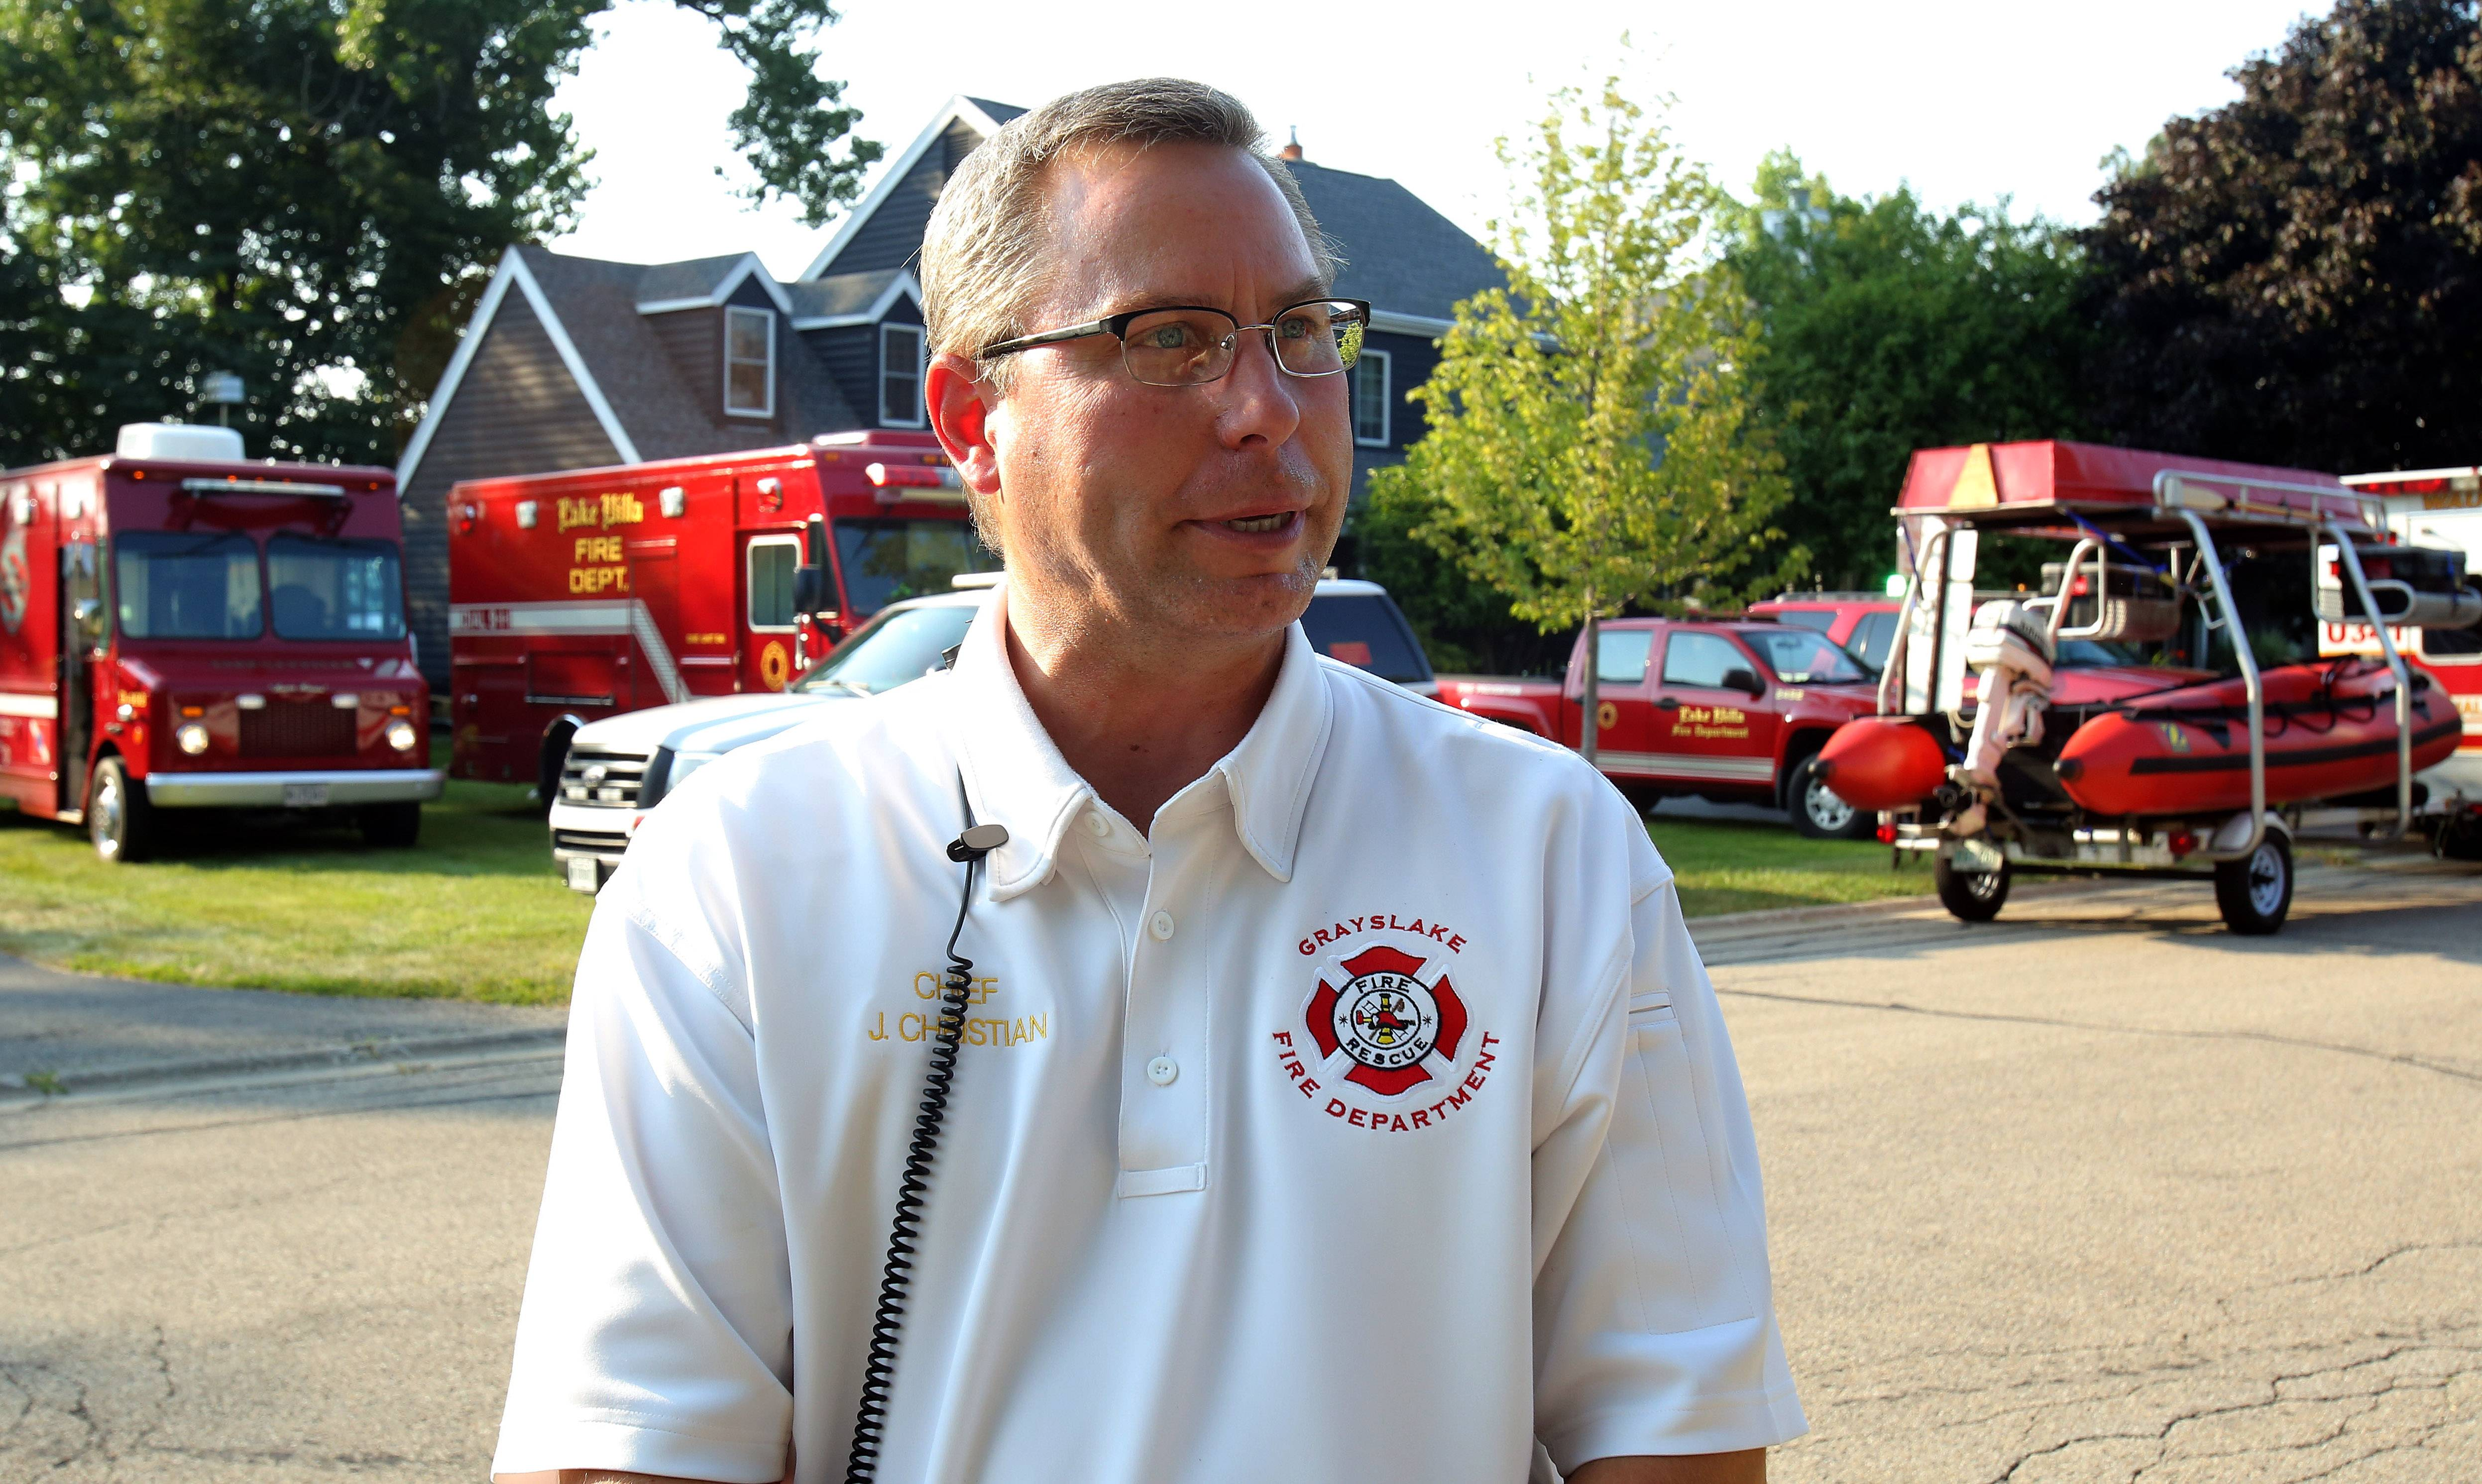 Grayslake Fire Protection District Chief John Christian talks to the media Monday afternoon near Third Lake, where the body of Grayslake Central High School student Matt Reed was recovered.